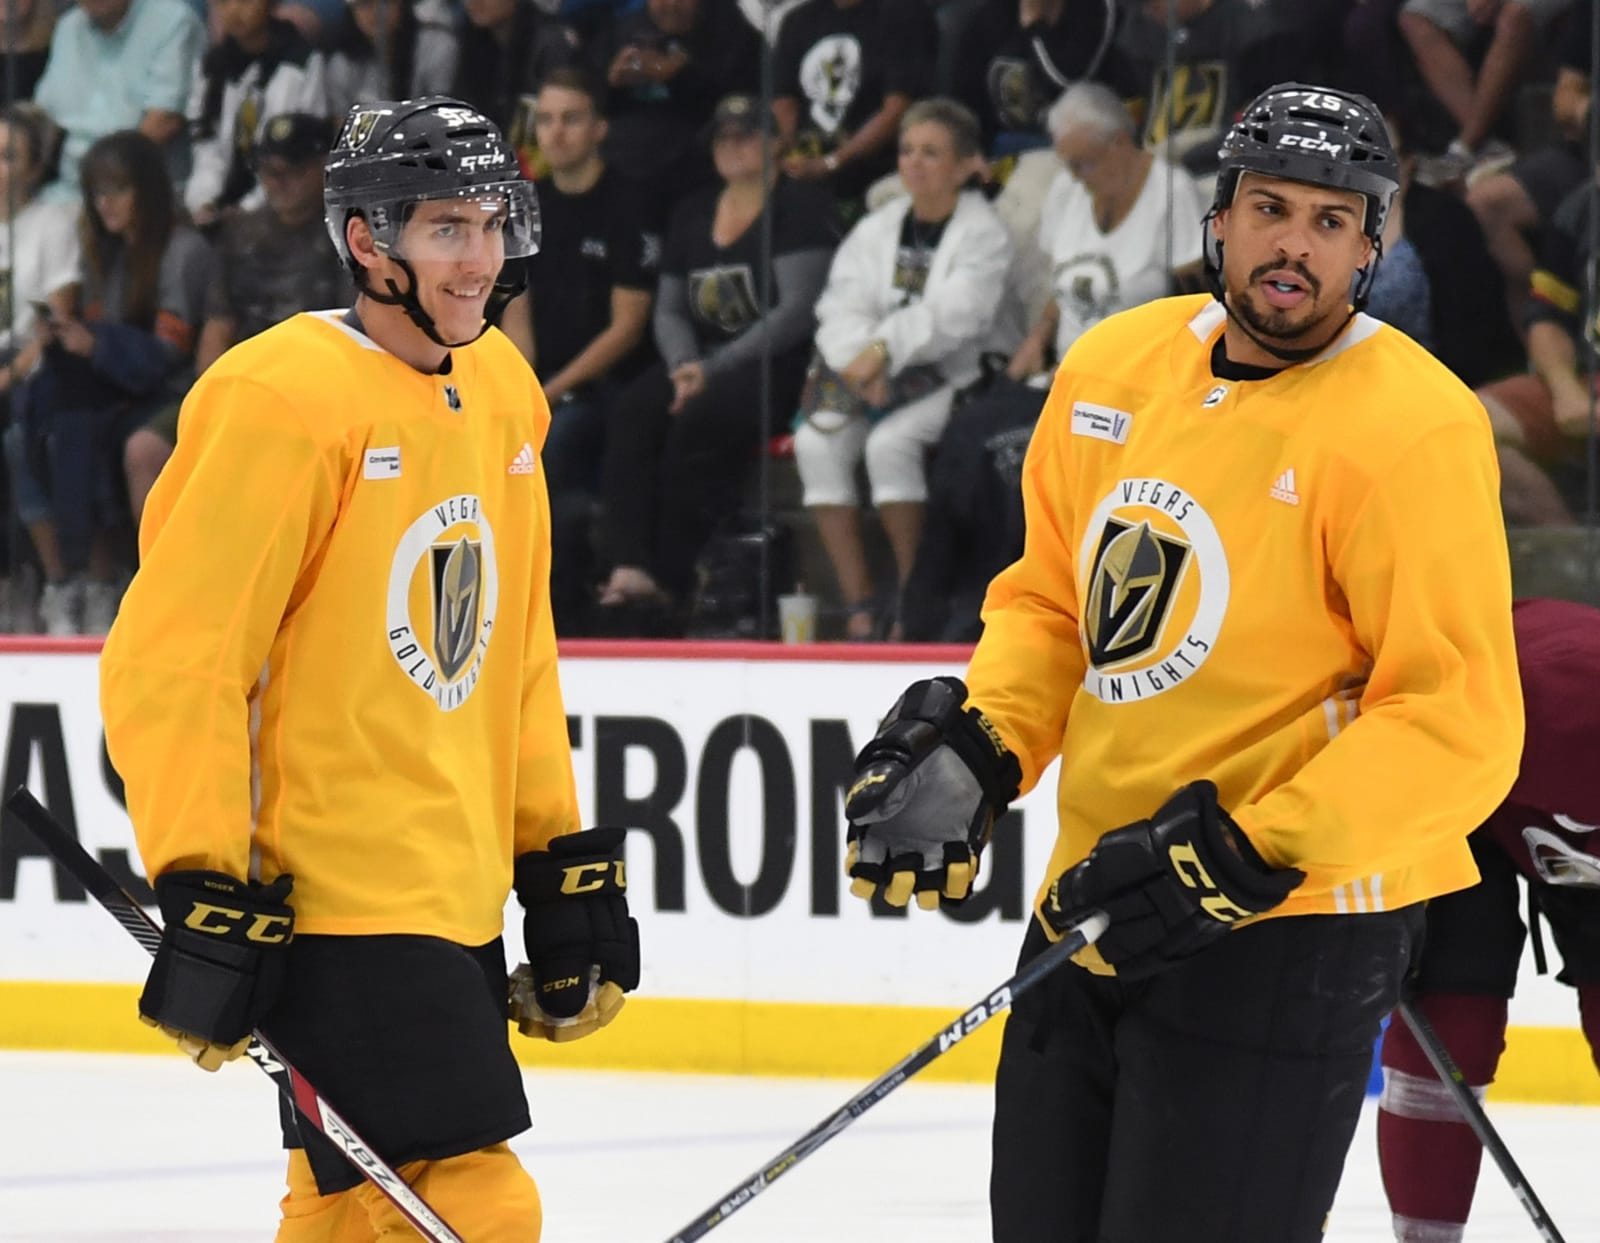 Vegas Golden Knights players Tomas Nosek (L) #92 and Ryan Reaves #75 skate during the team's first practice.